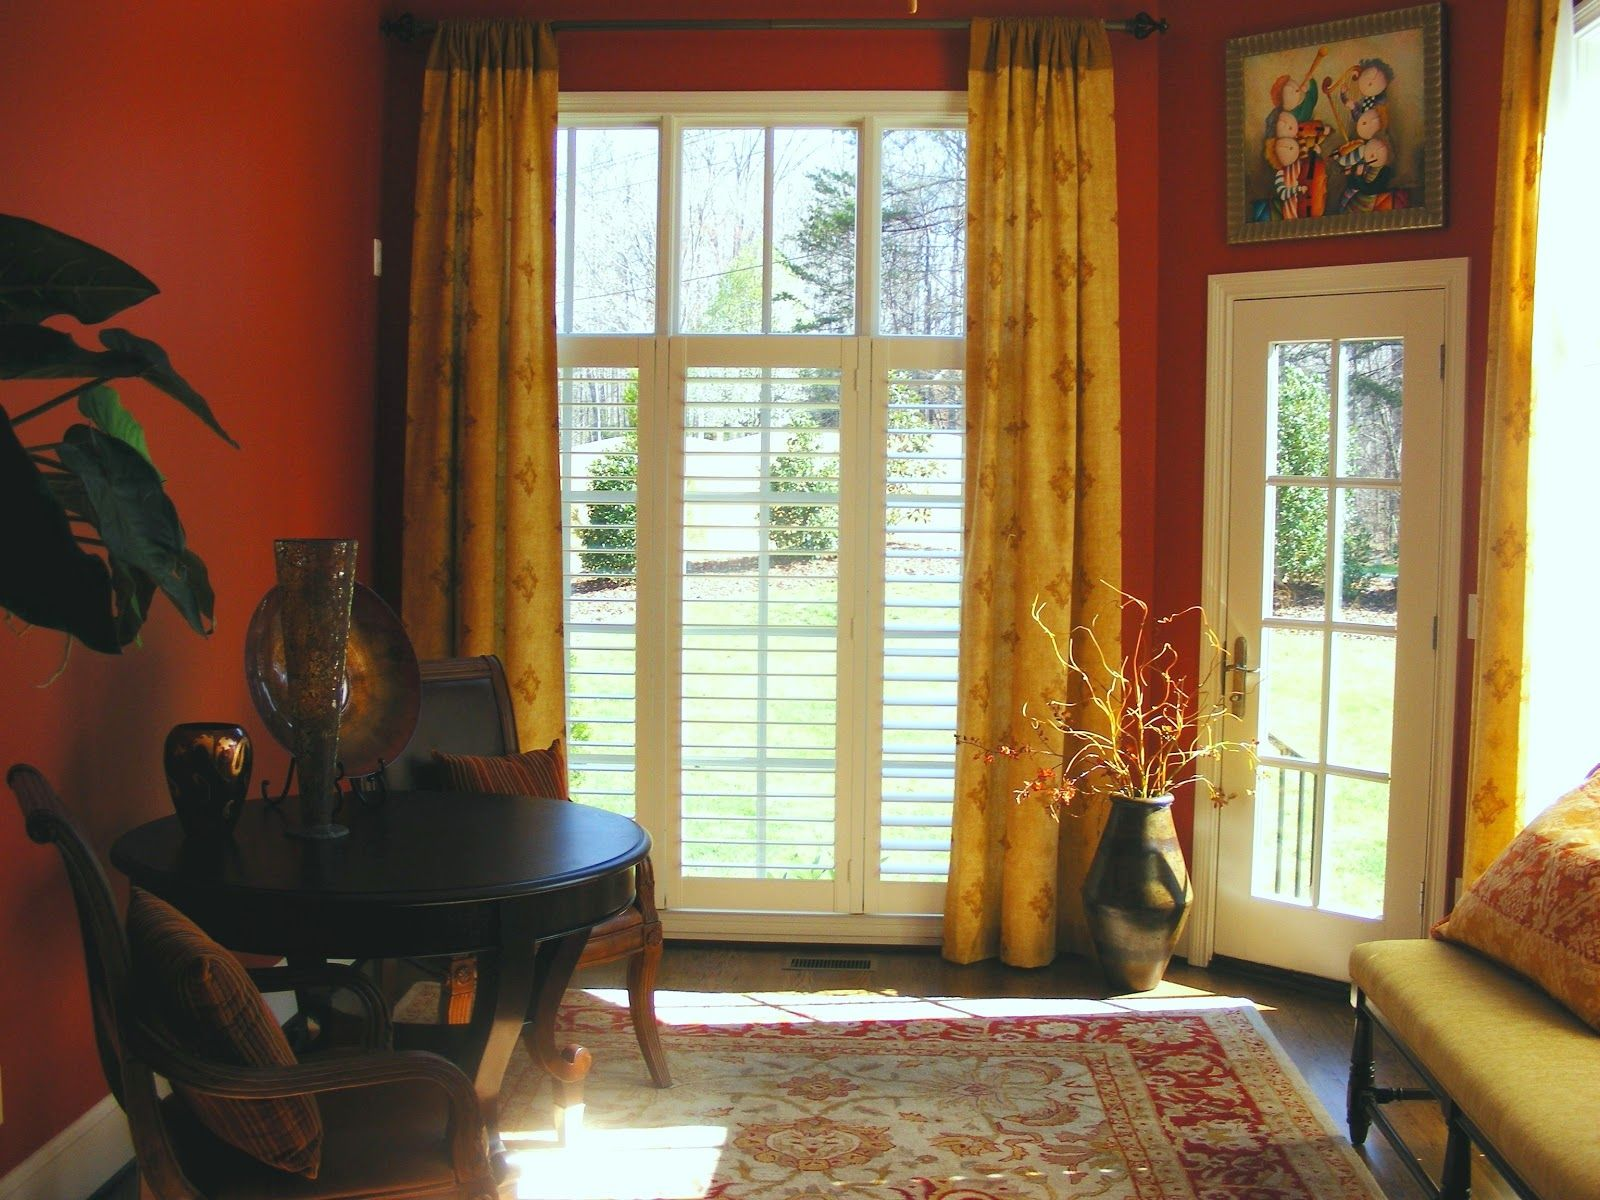 Interior chic window treatment ideas with charming floral curtain